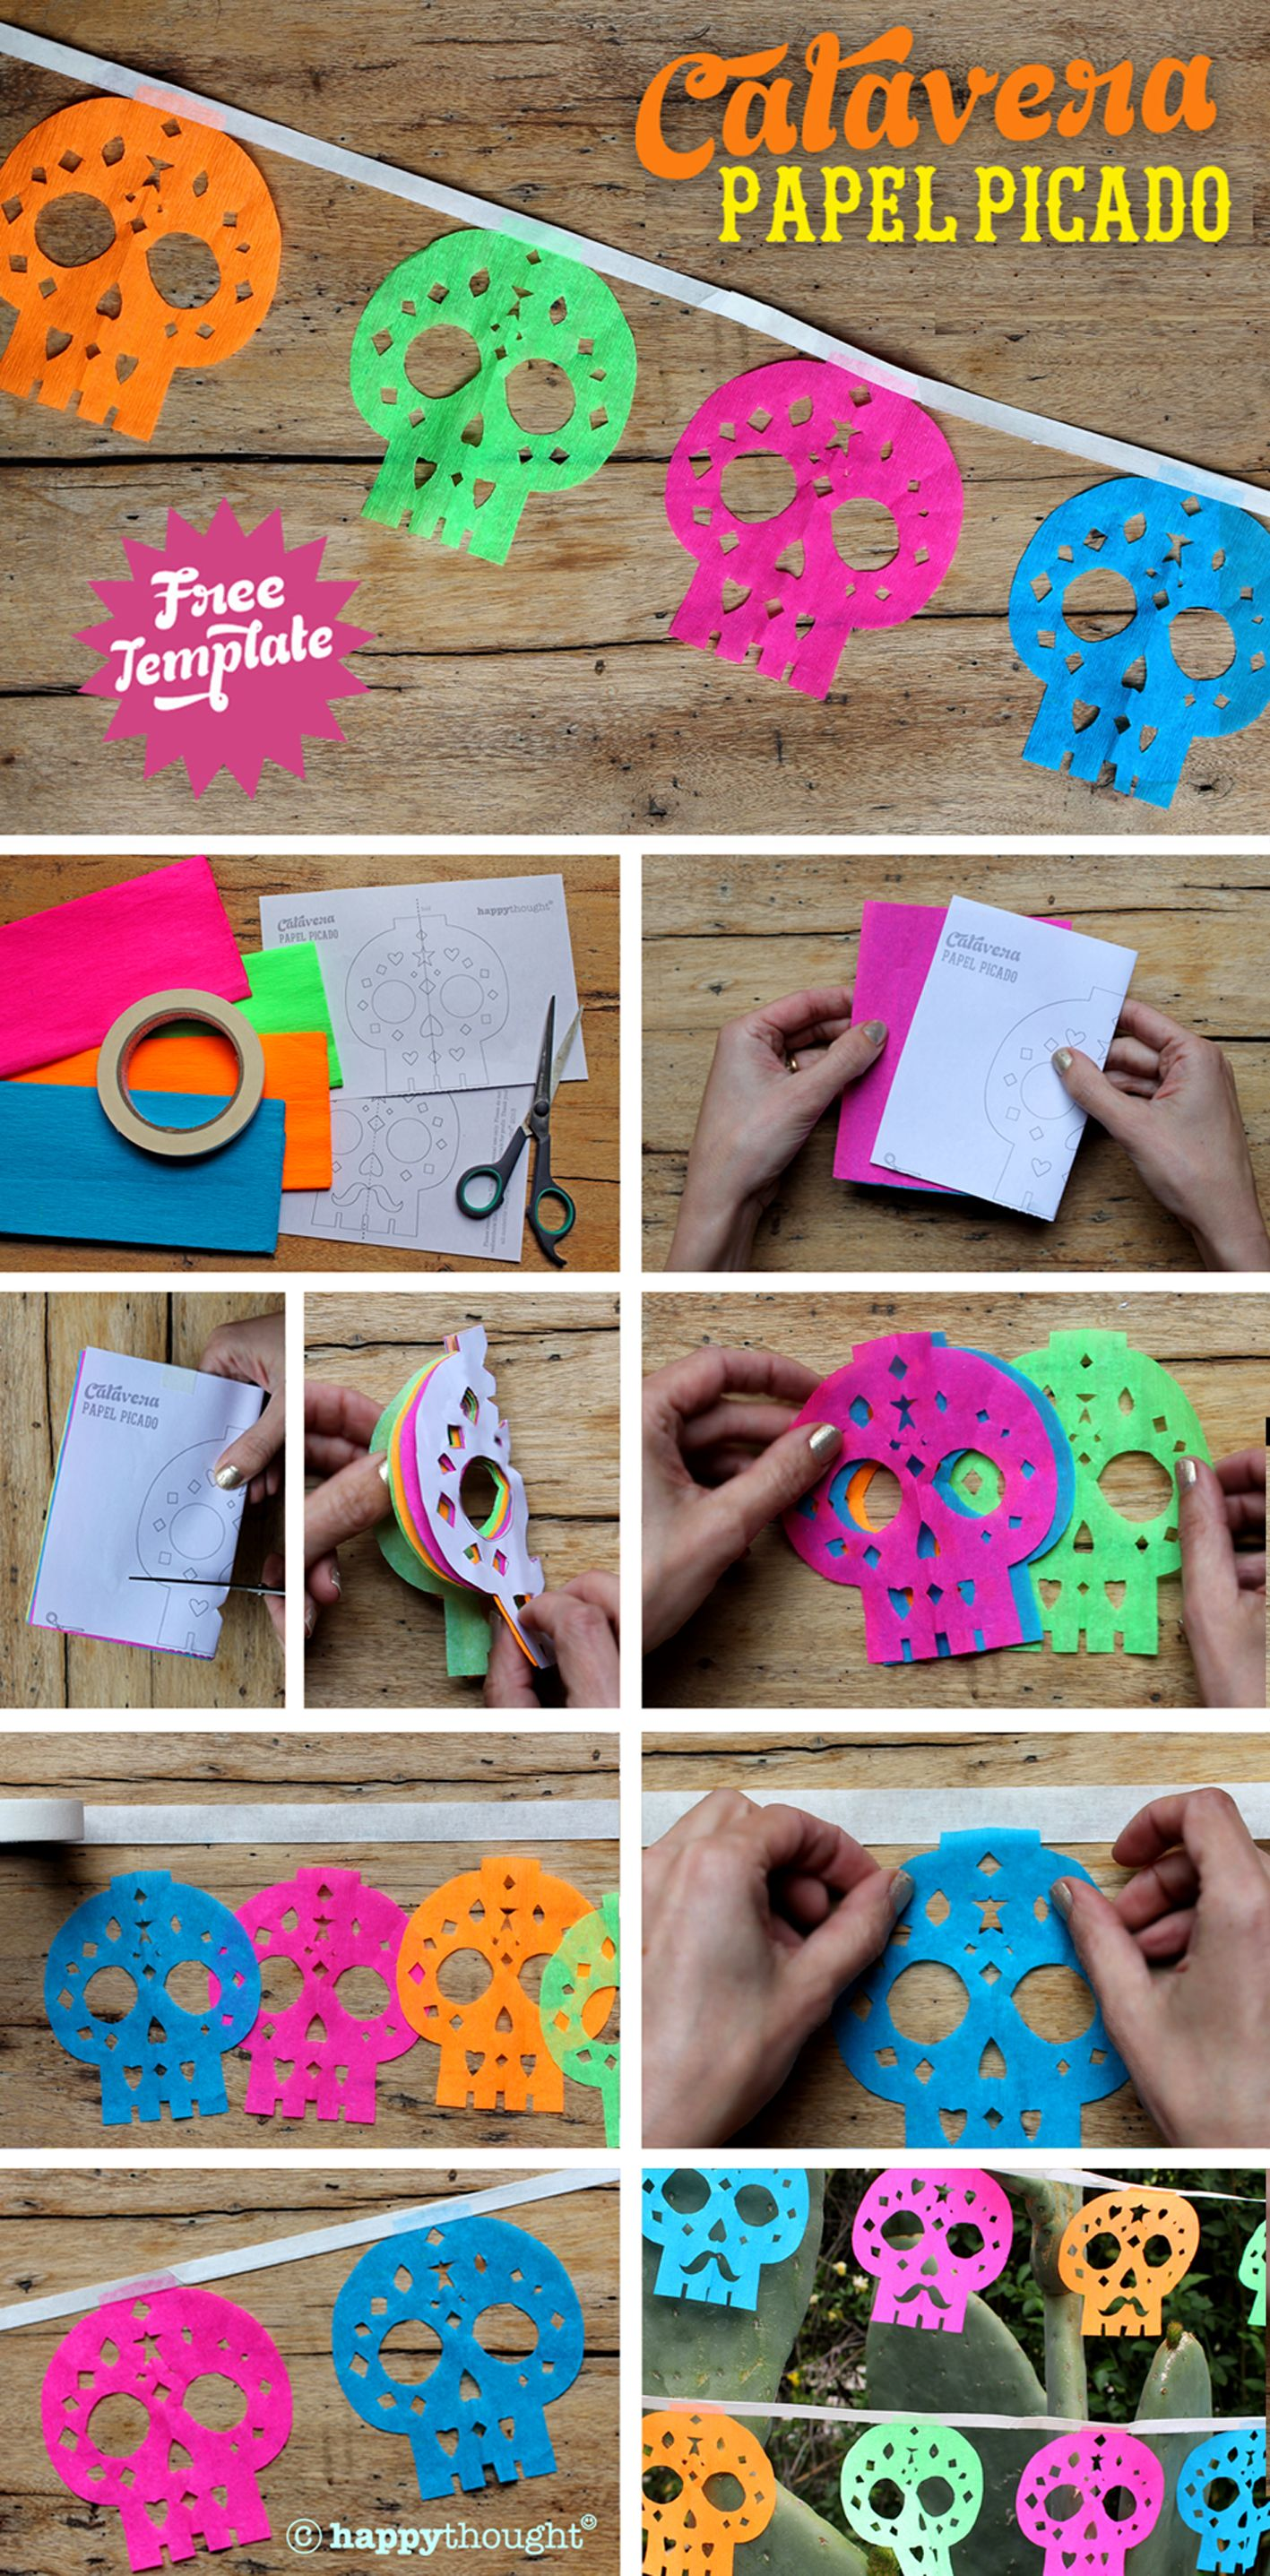 Fun quick & easy to make papel picado calaveras Simple video